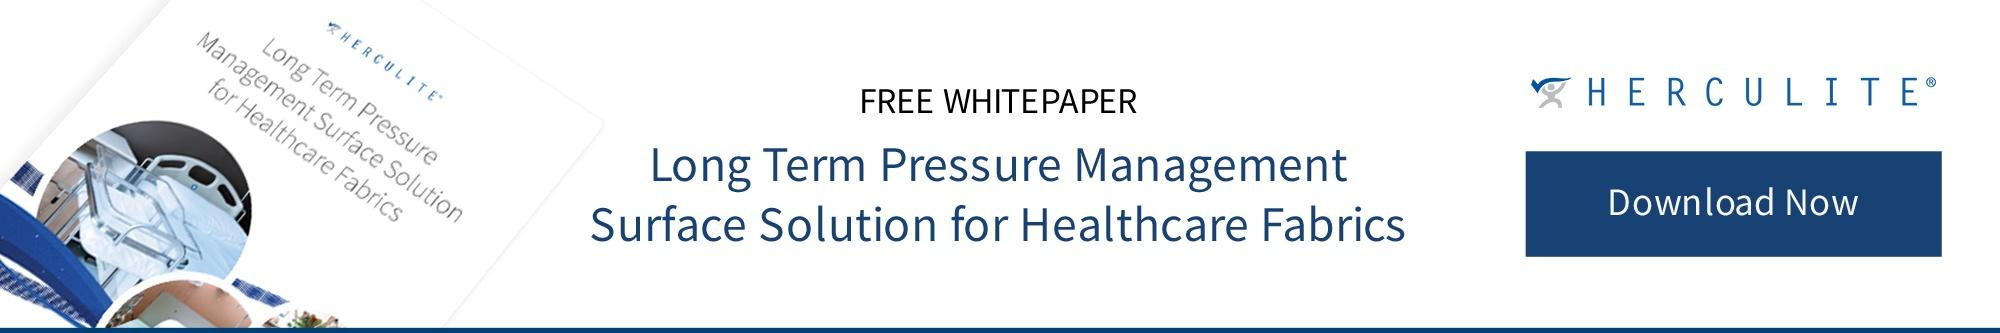 Long Term Pressure Management Surface Solution for Healthcare Fabrics Whitepaper